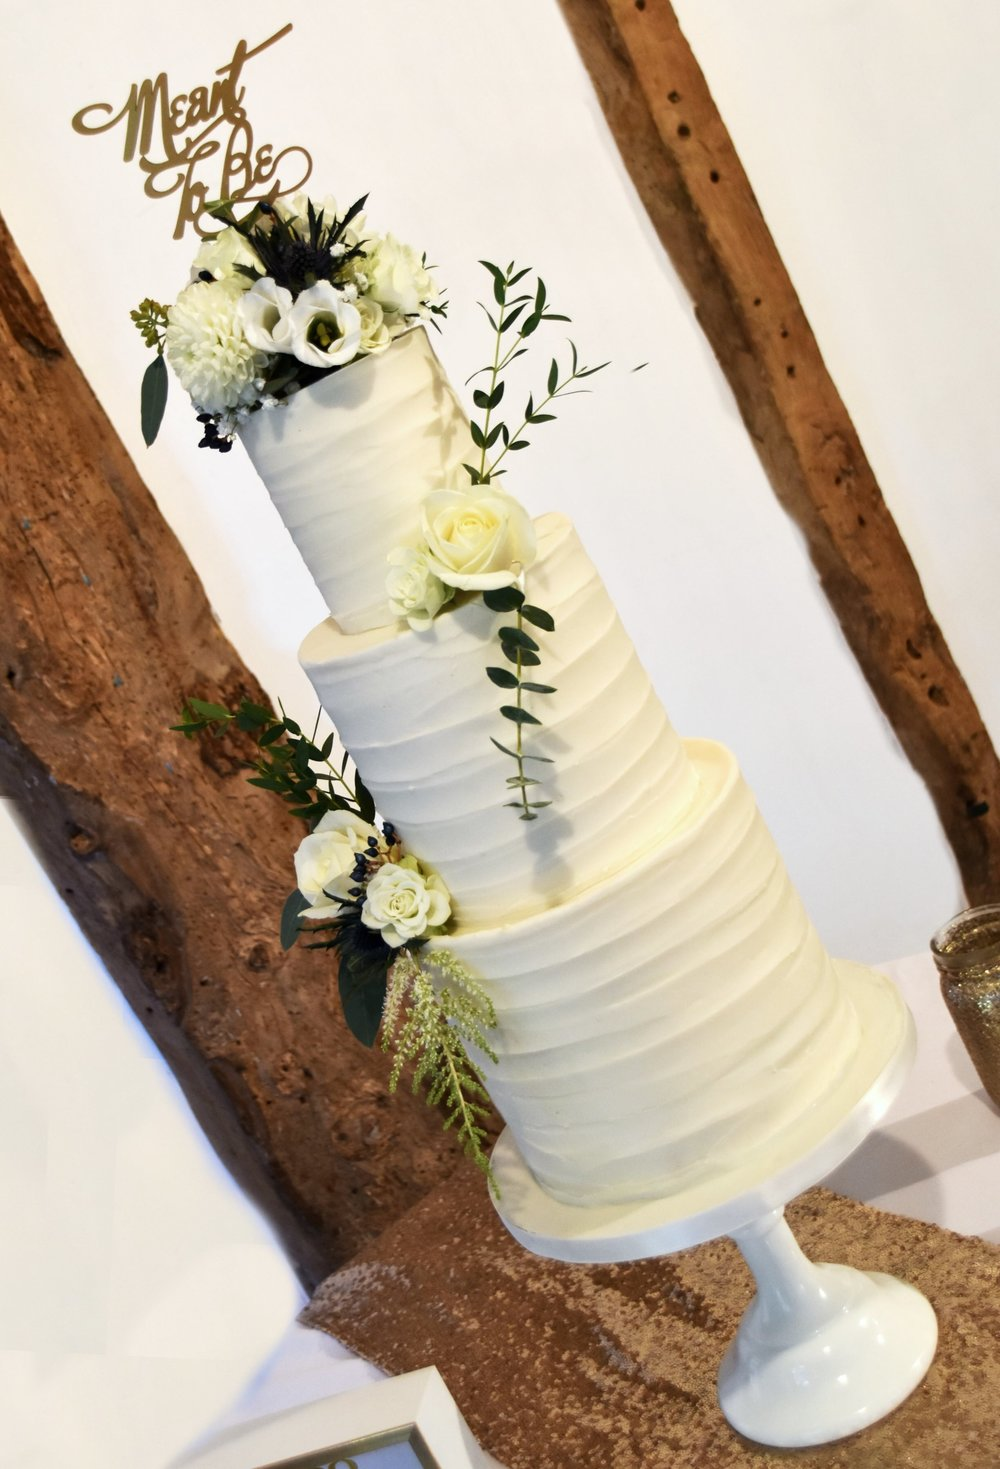 Texture buttercream wedding cake with fresh flowers, Cake by Hertfordshire wedding cake company Meadowsweet Cakes, set up at South Farm